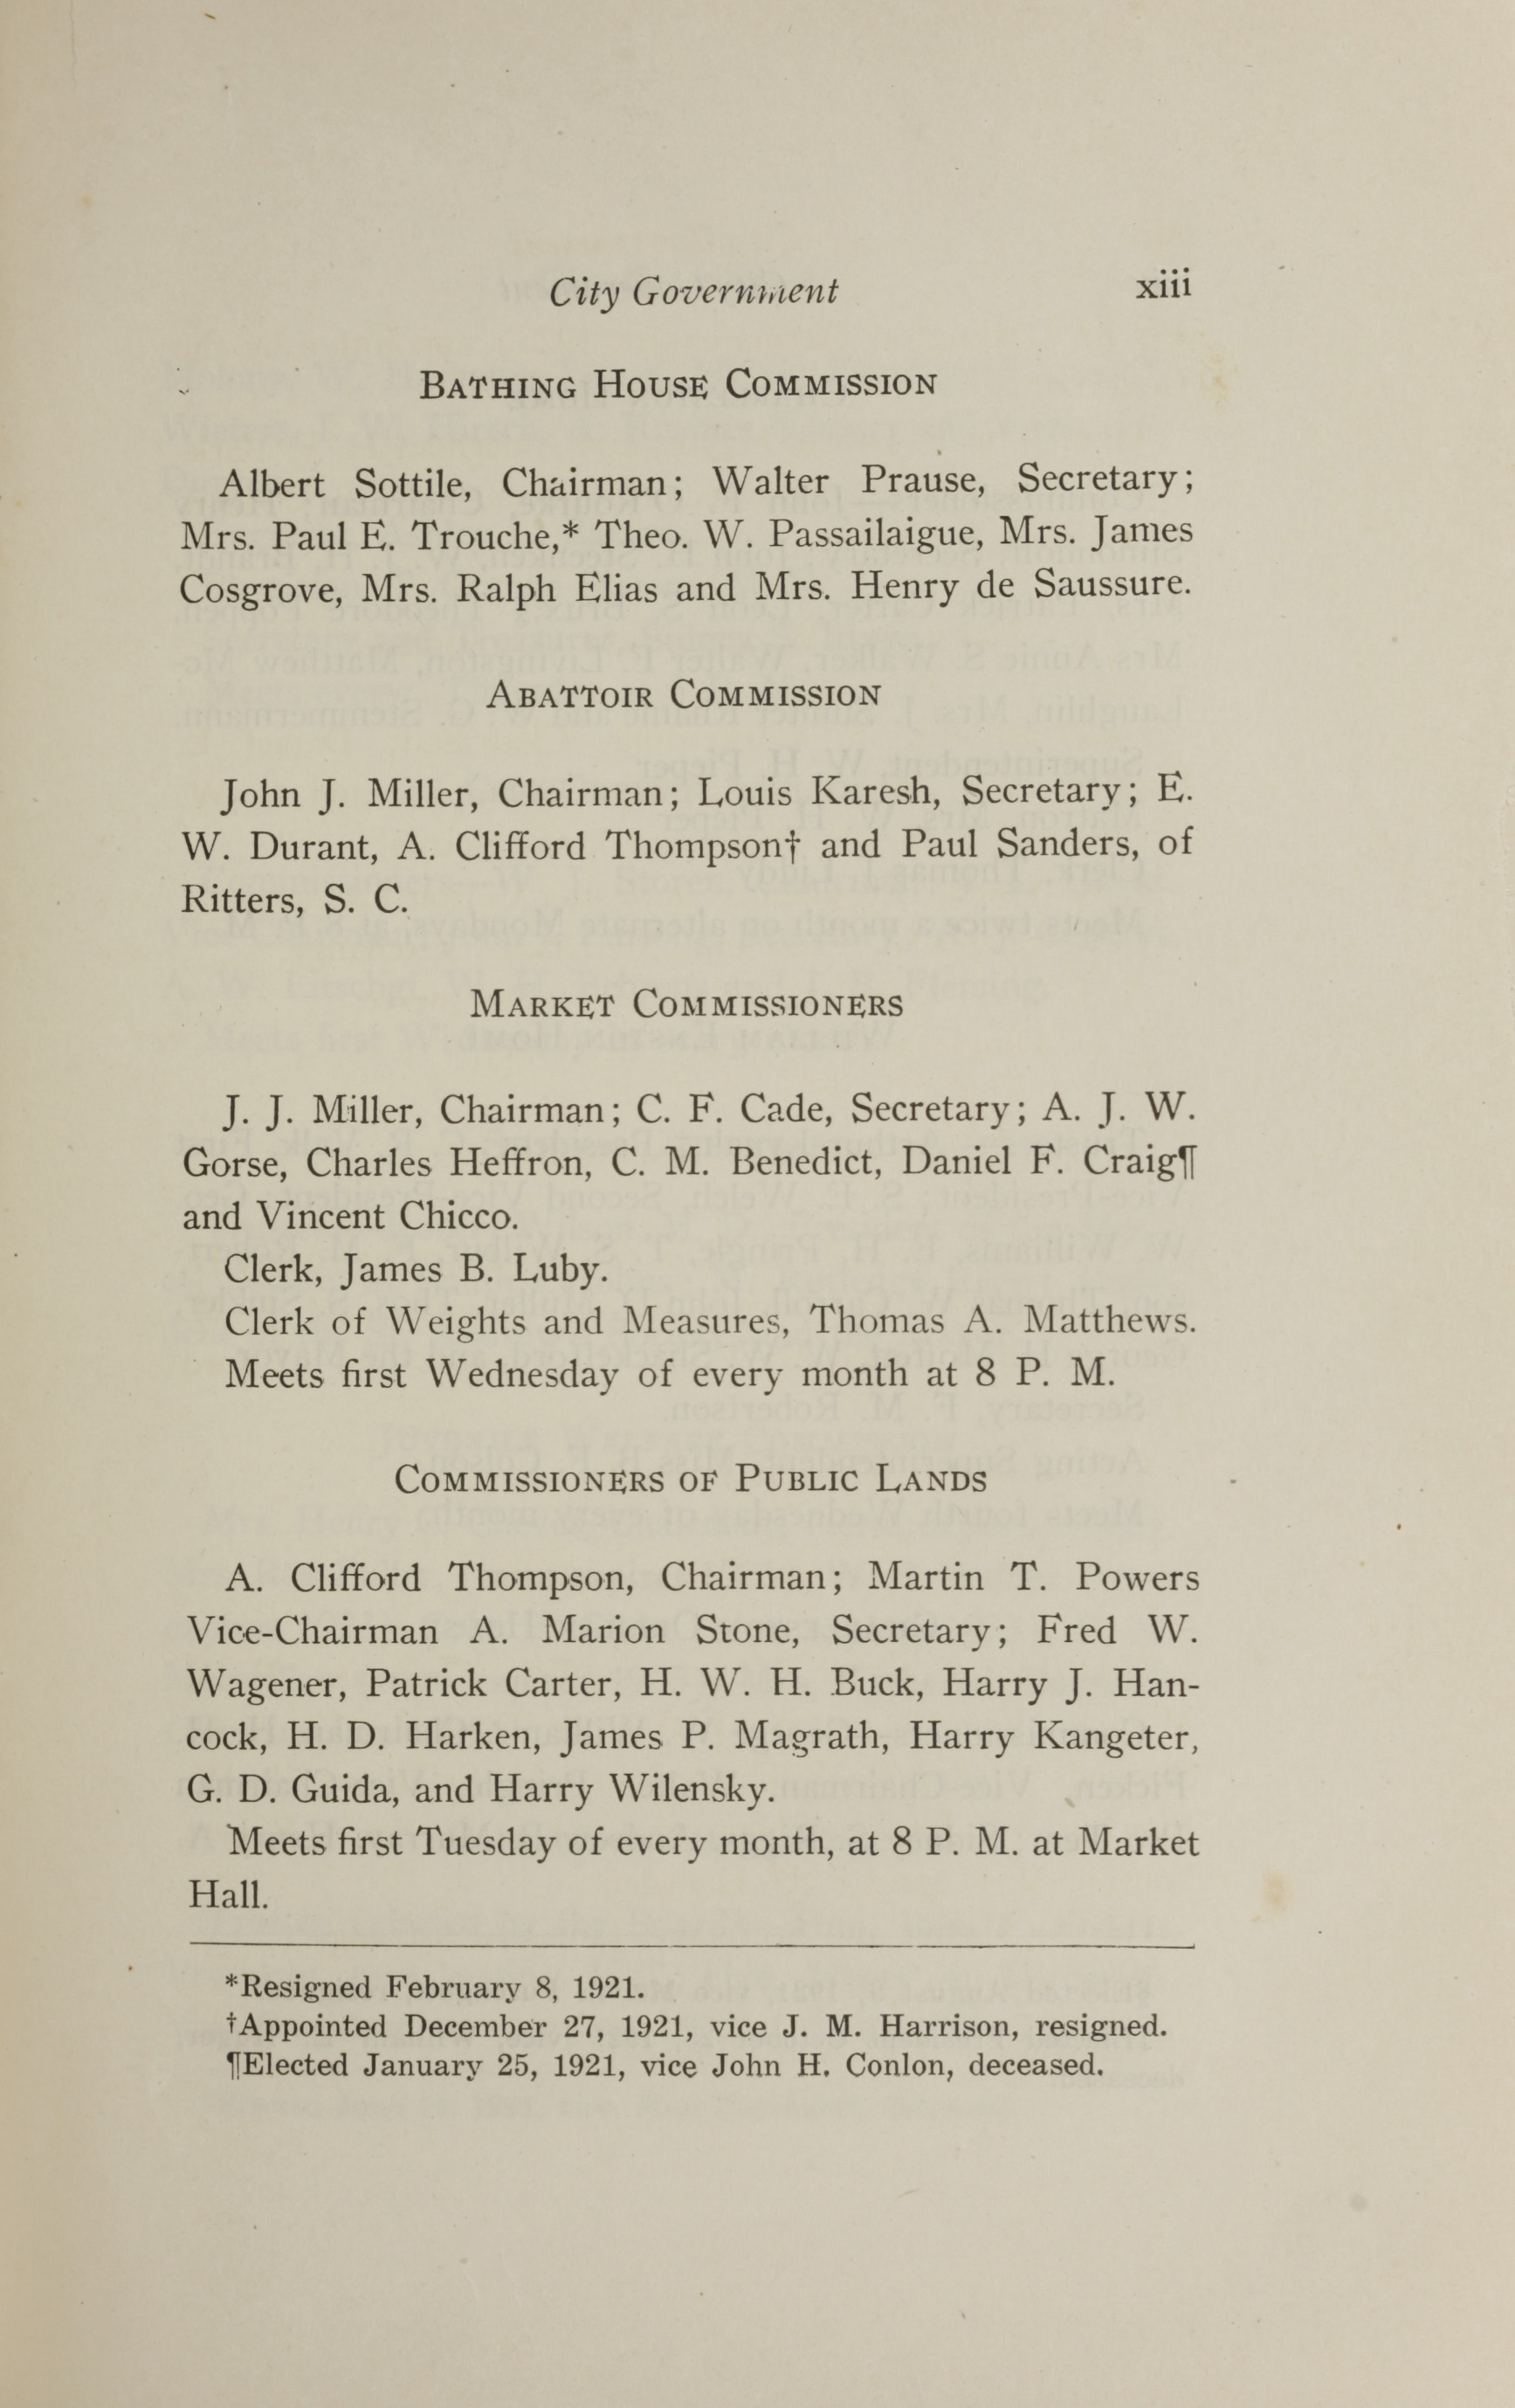 Charleston Yearbook, 1921, page xiii